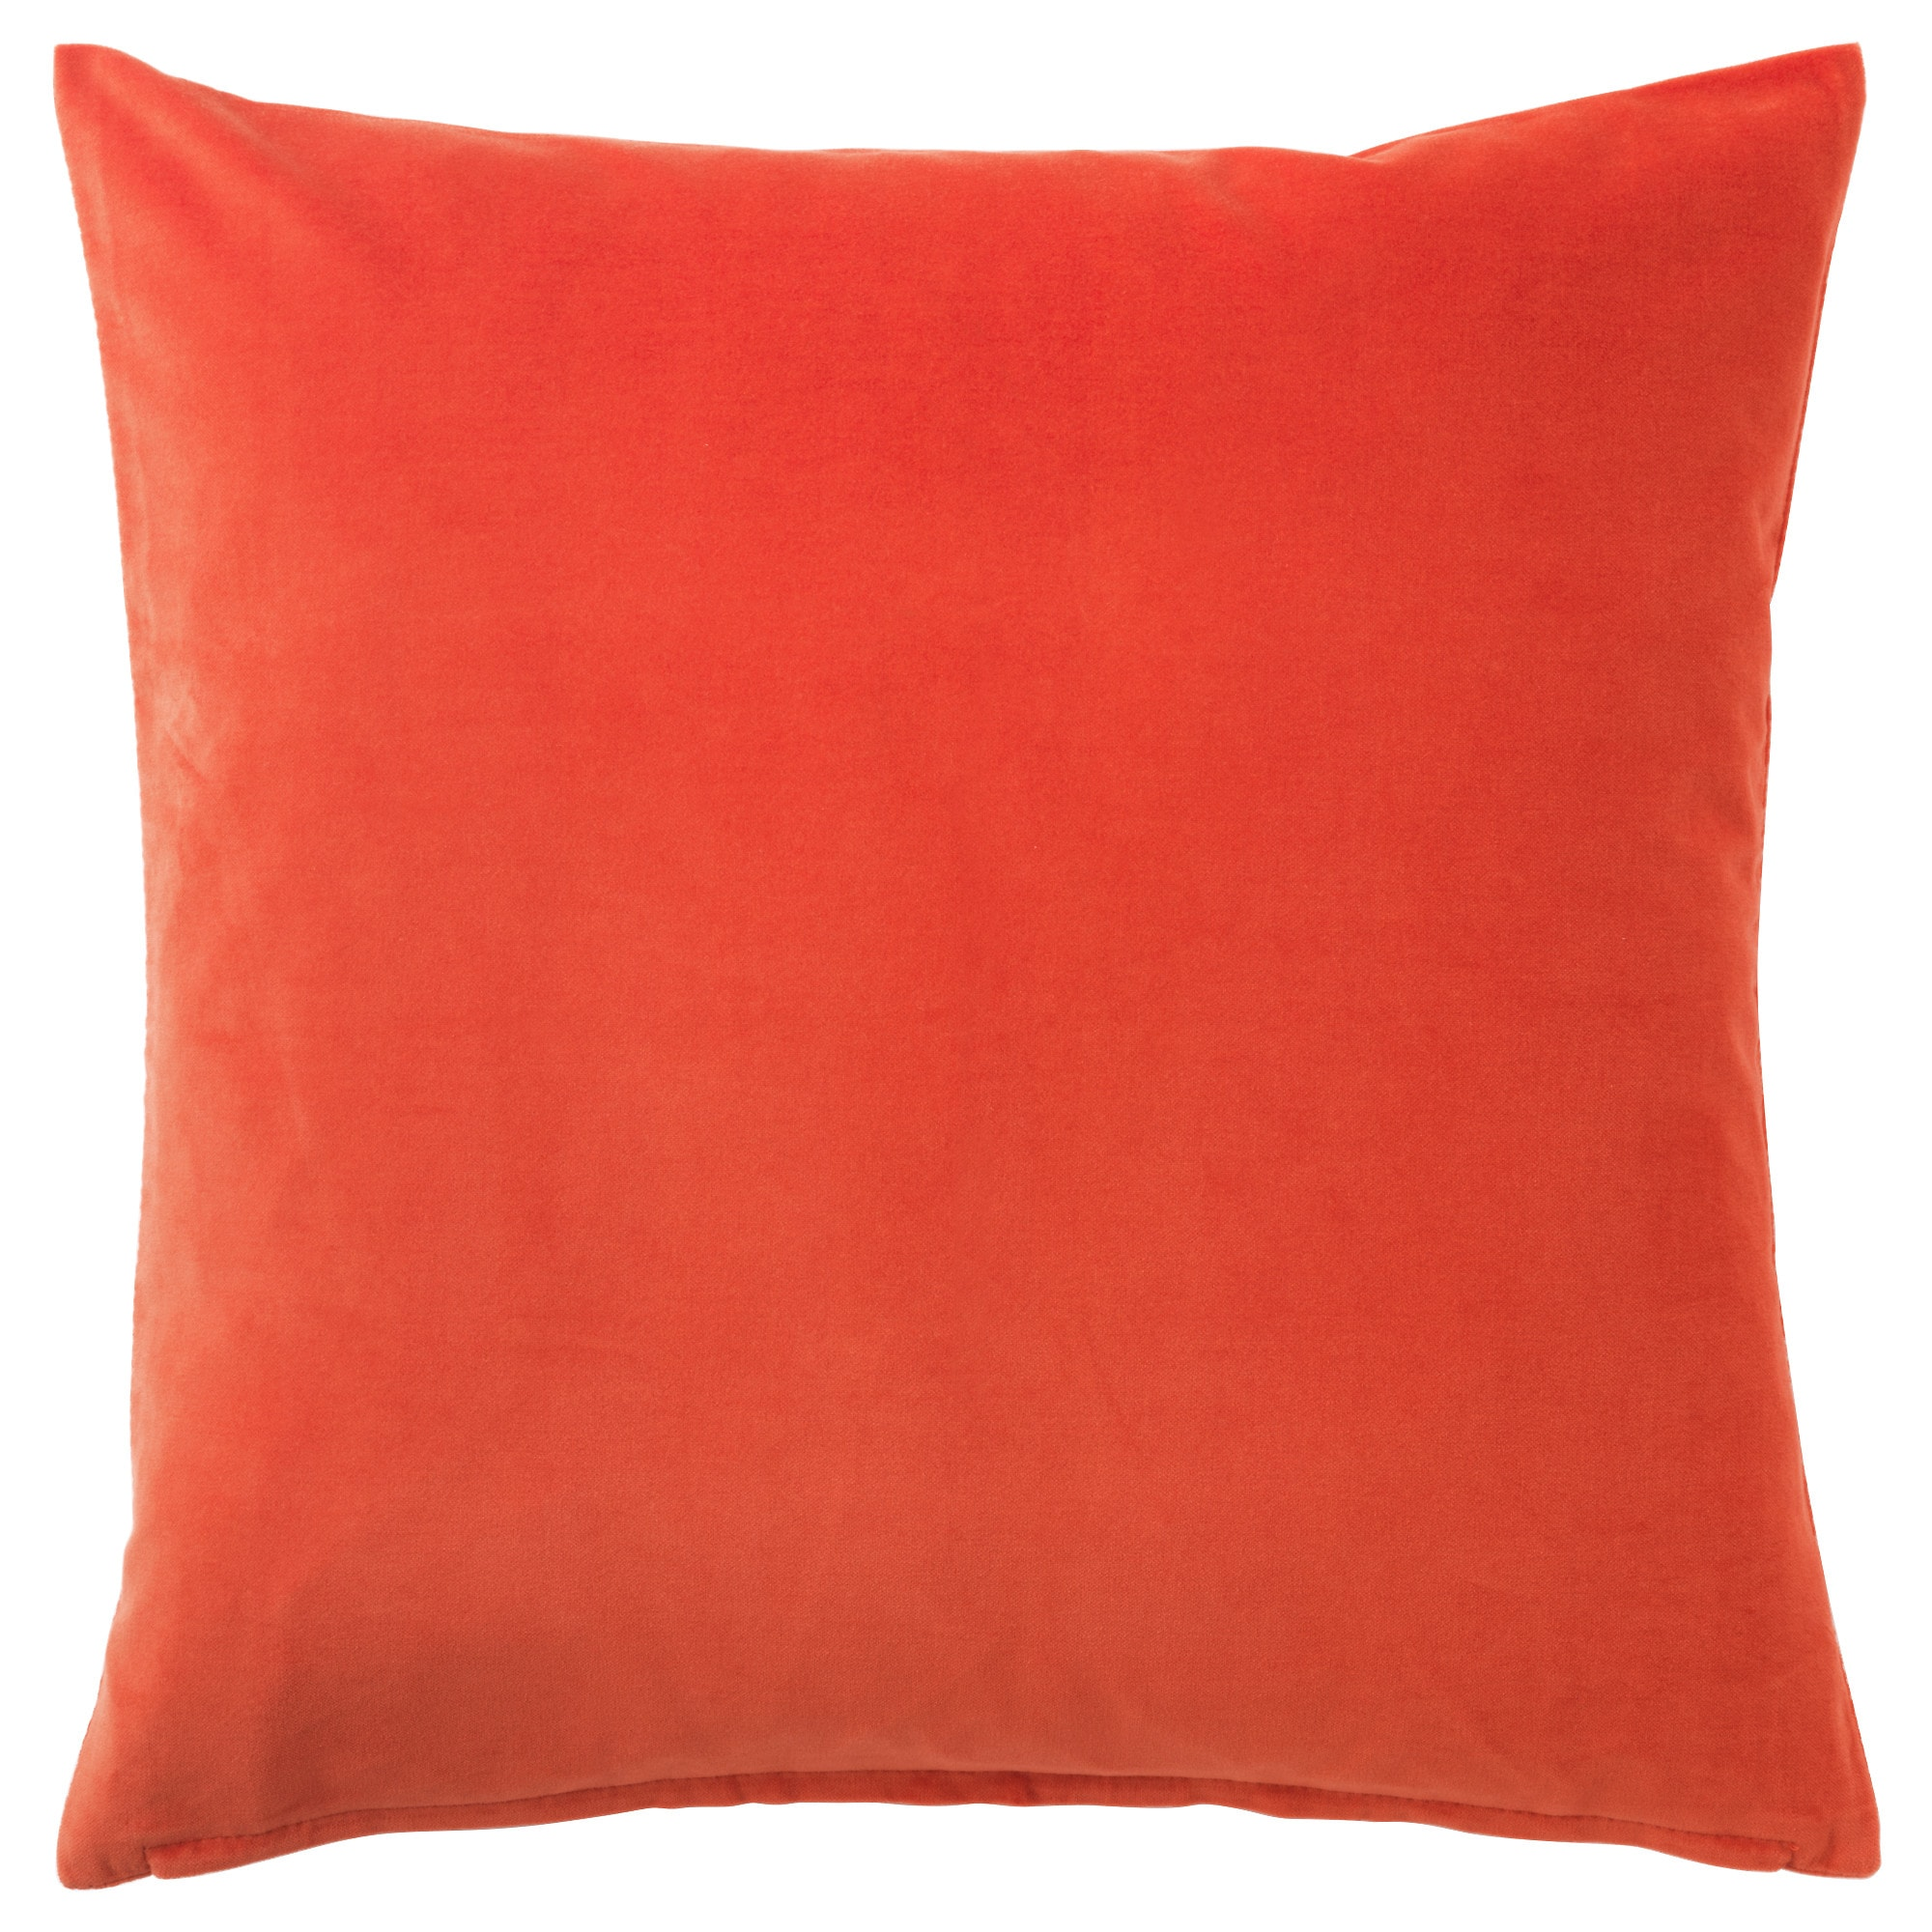 cushions  cushion covers  ikea - sanela cushion cover orange length   width   length